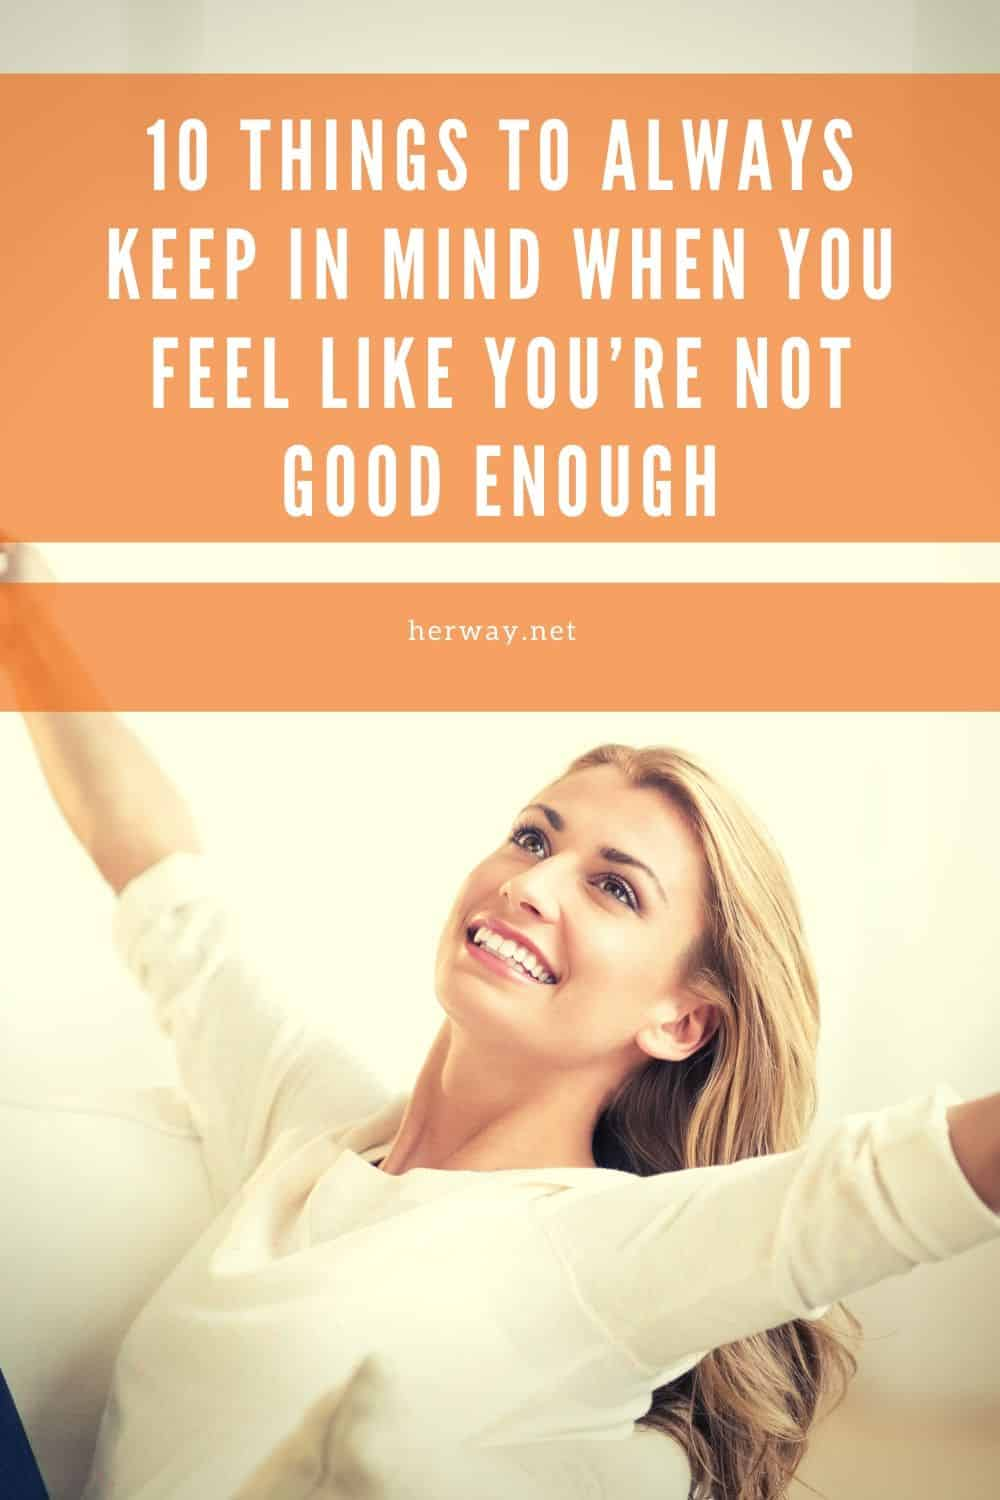 10 Things To Always Keep In Mind When You Feel Like You're Not Good Enough